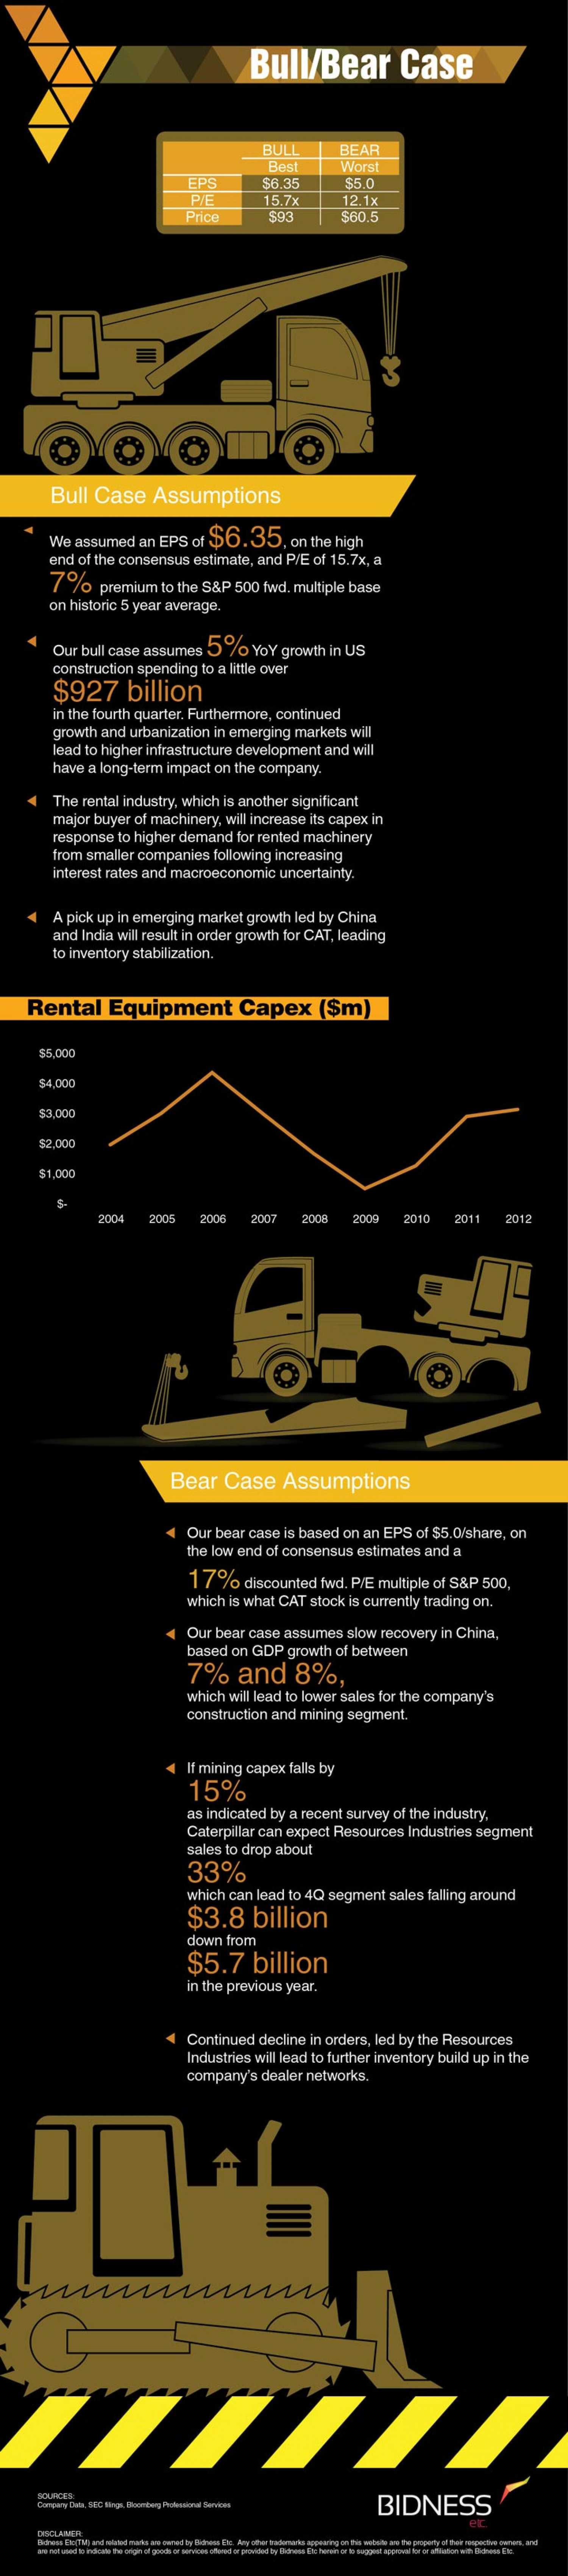 Caterpillar (CAT) Bull Bear Case Infographic